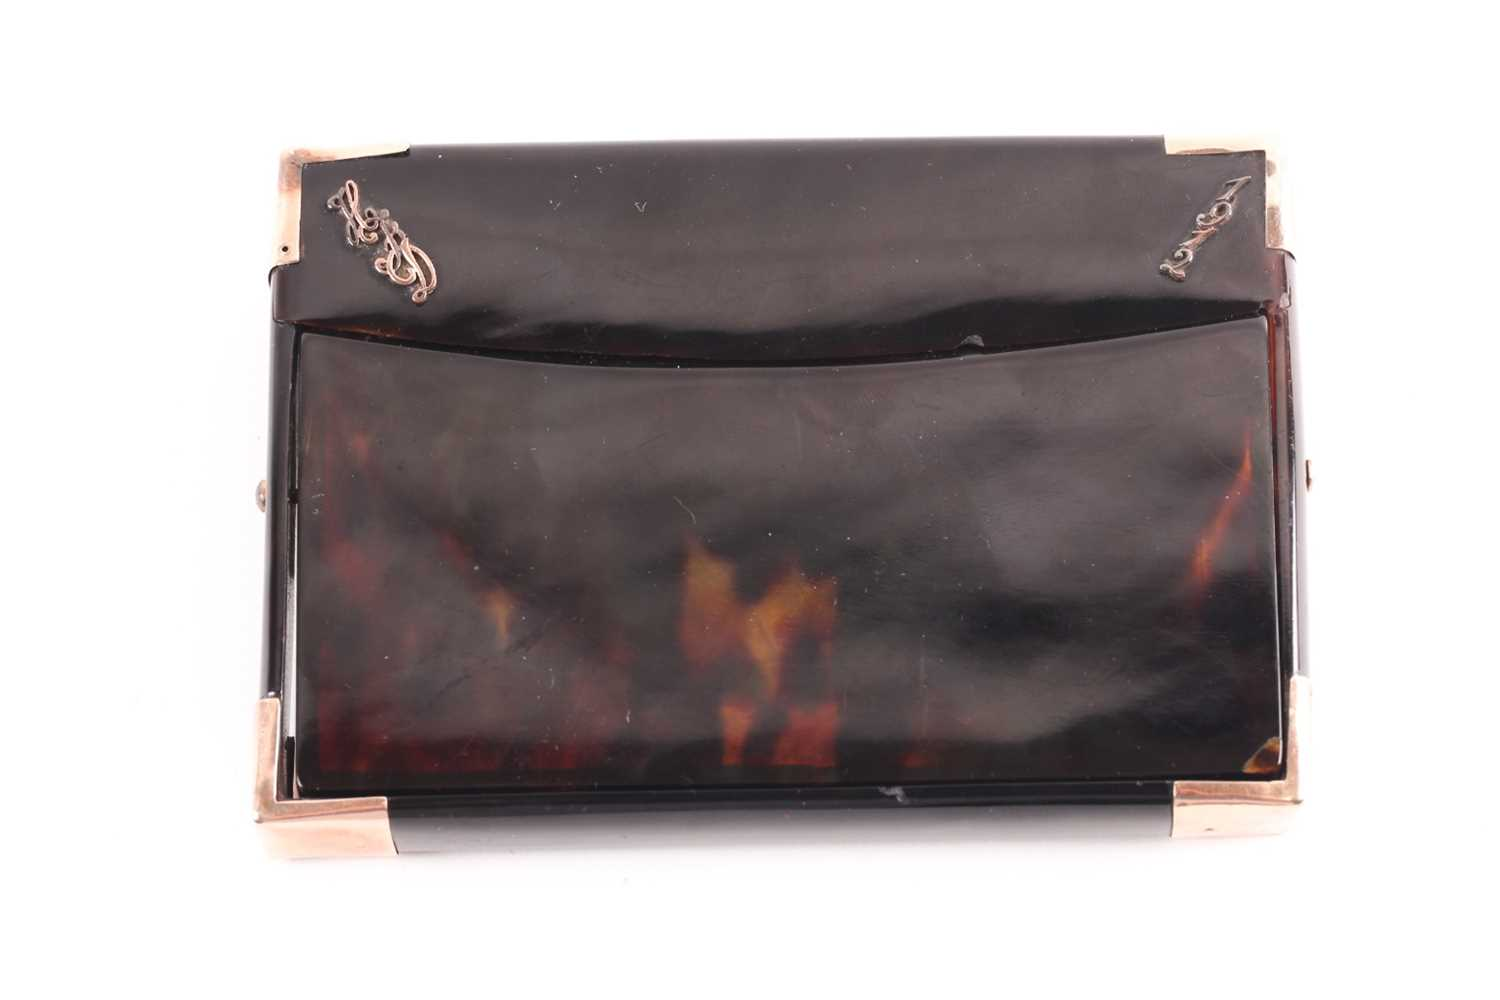 An early 20th century rose gold mounted tortoiseshell card case; rectangular envelope style with